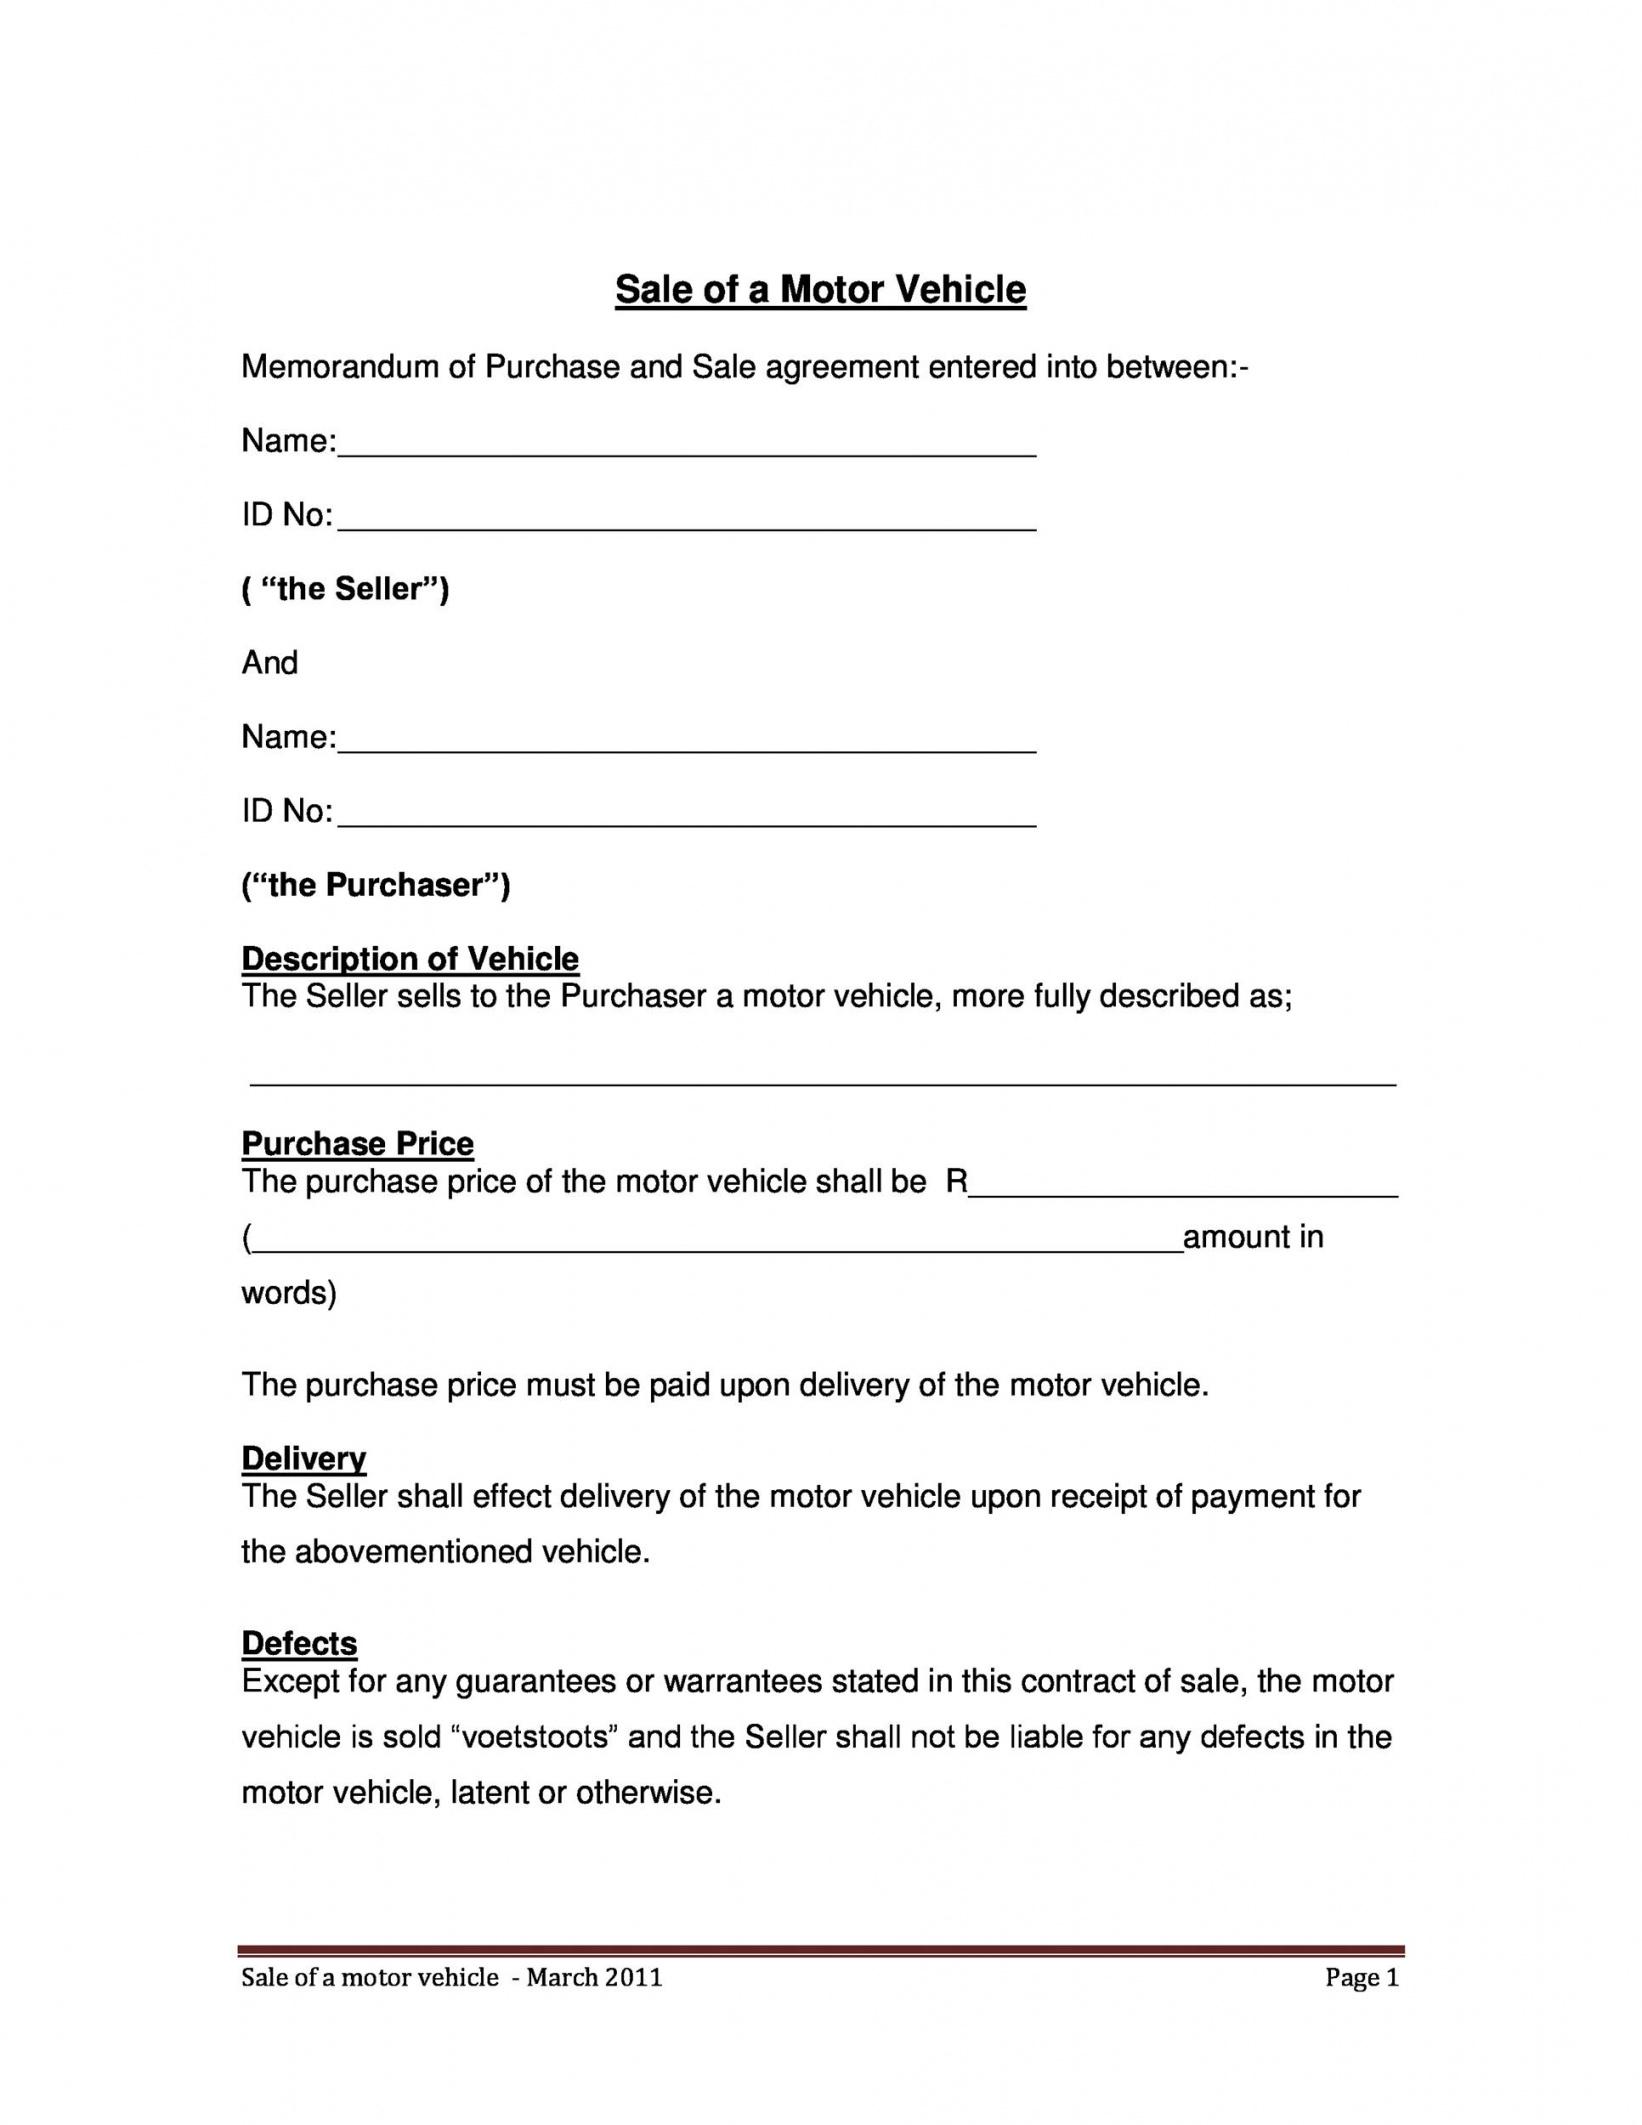 Buy Here Pay Here Contract Template Word